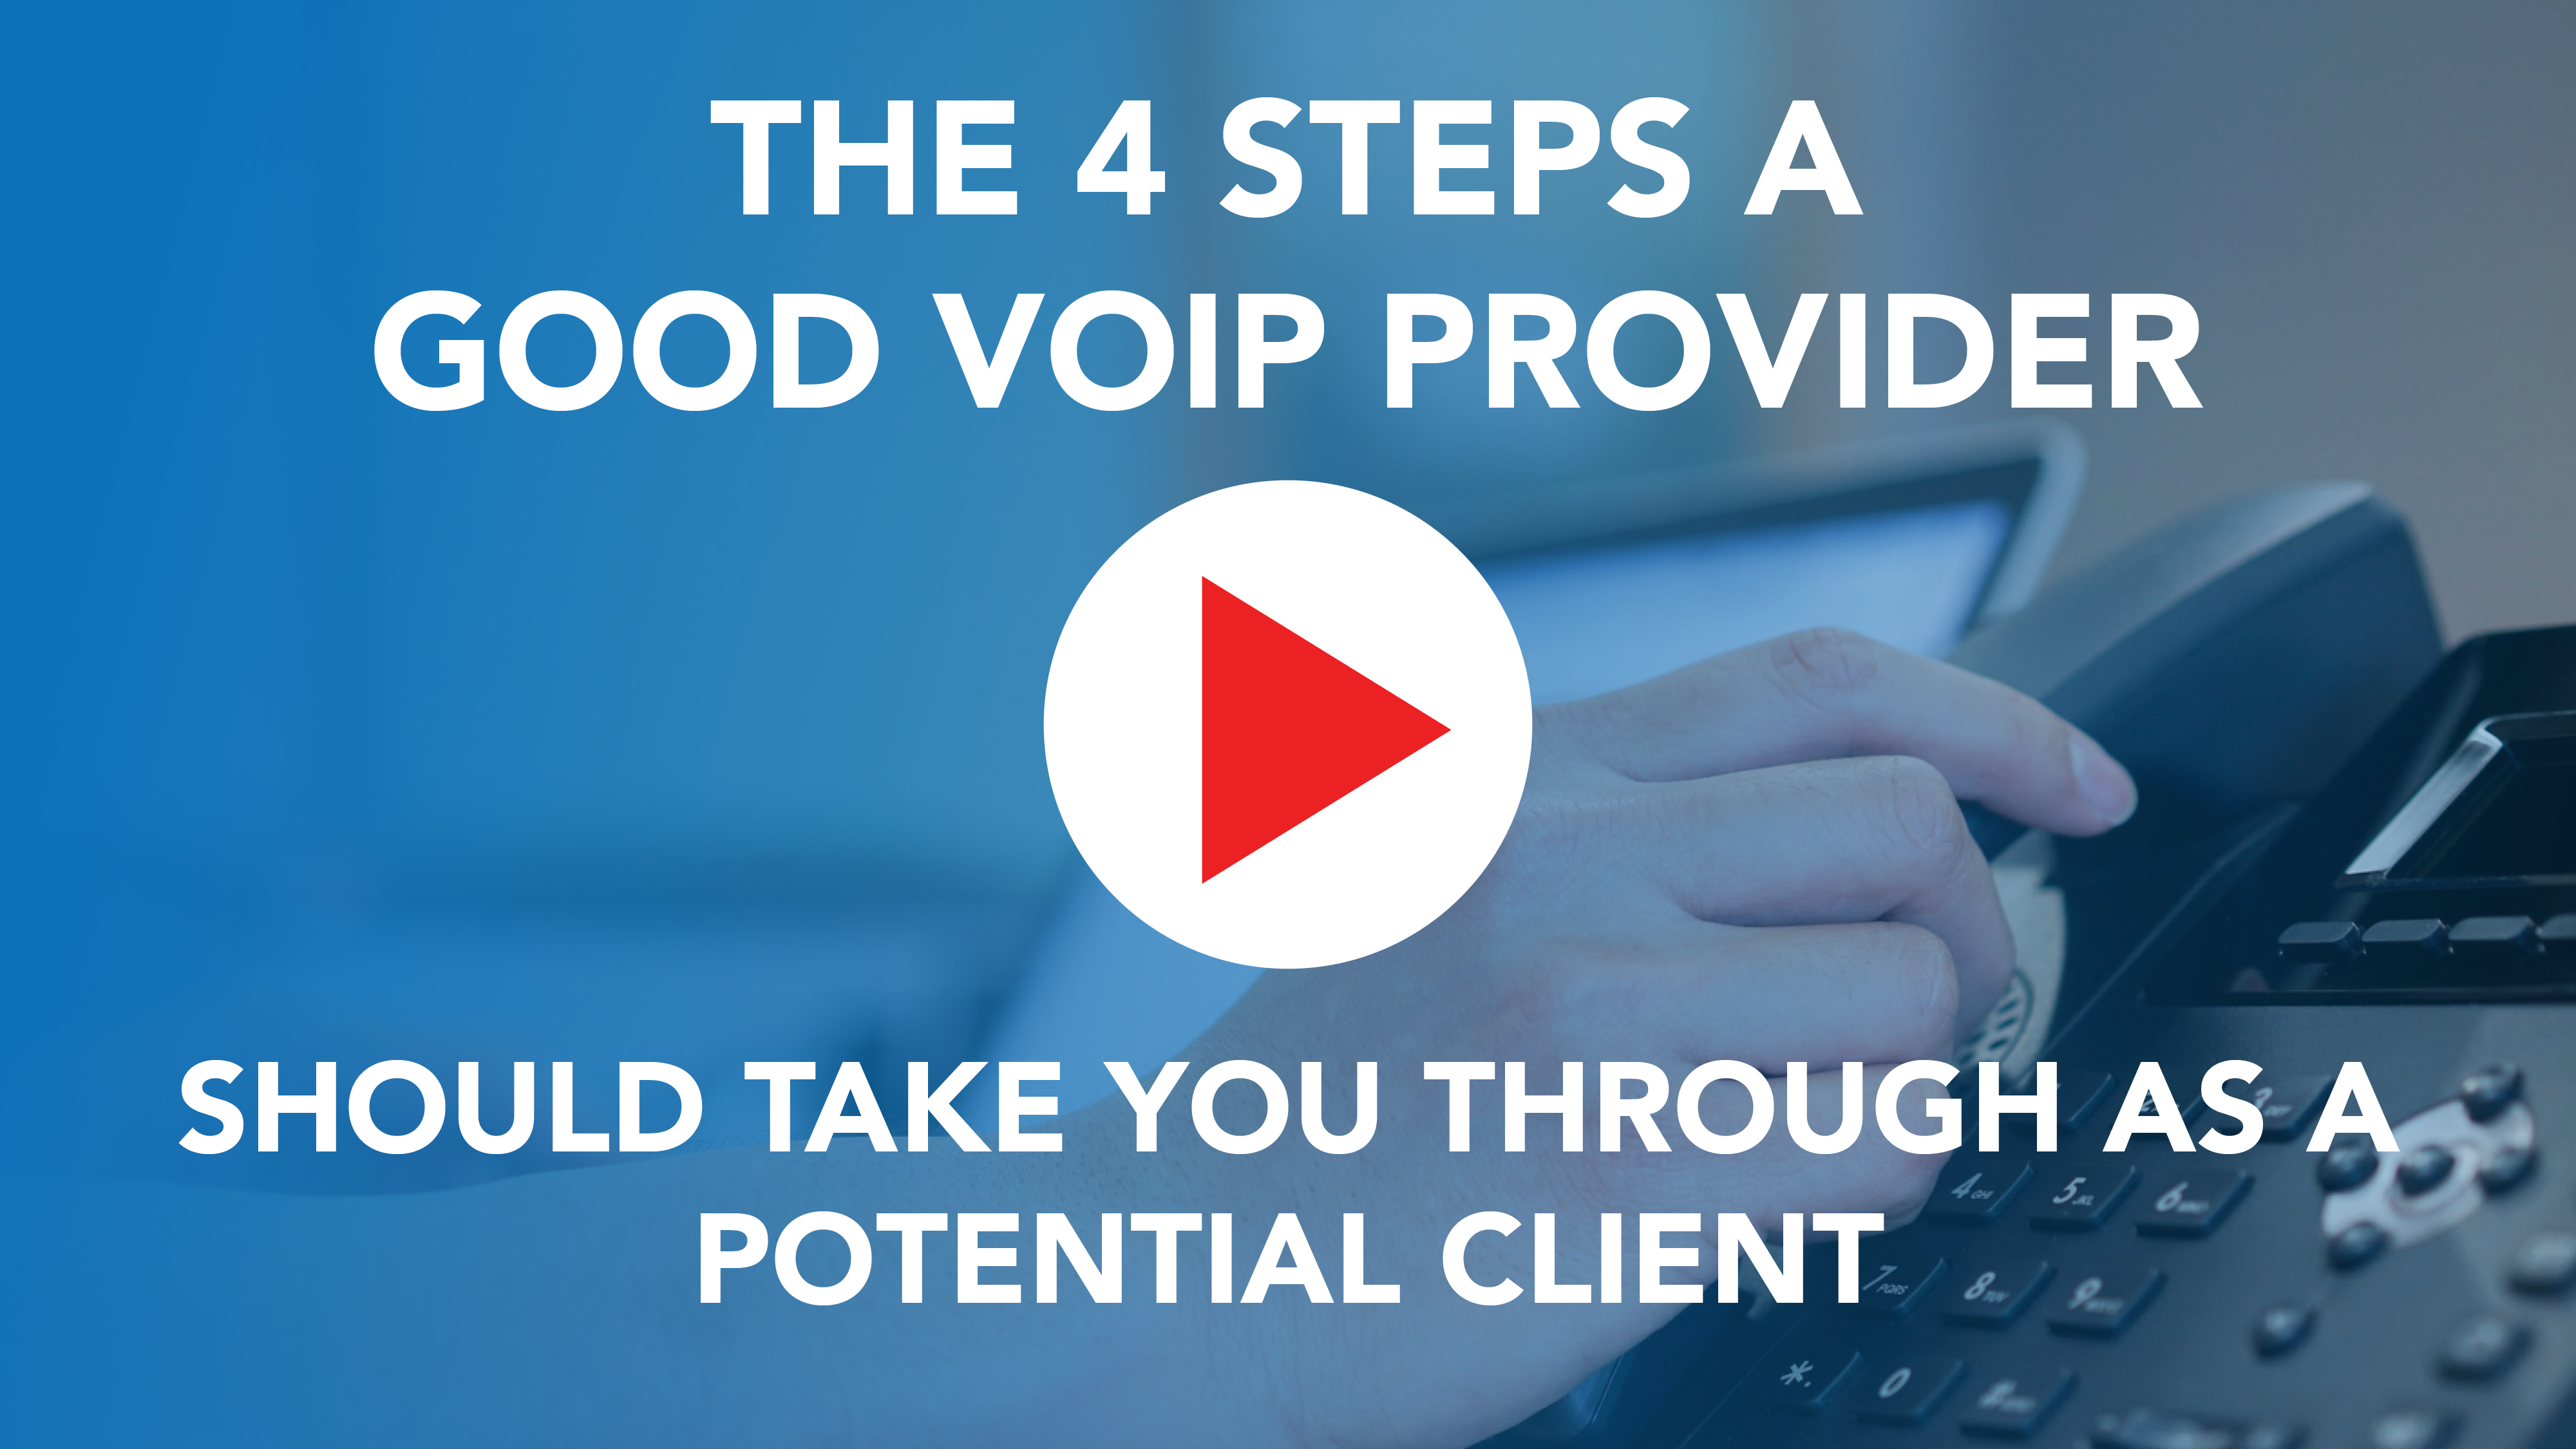 The 4 Steps a Good VoIP Provider Should Take You Through as a Potential Client